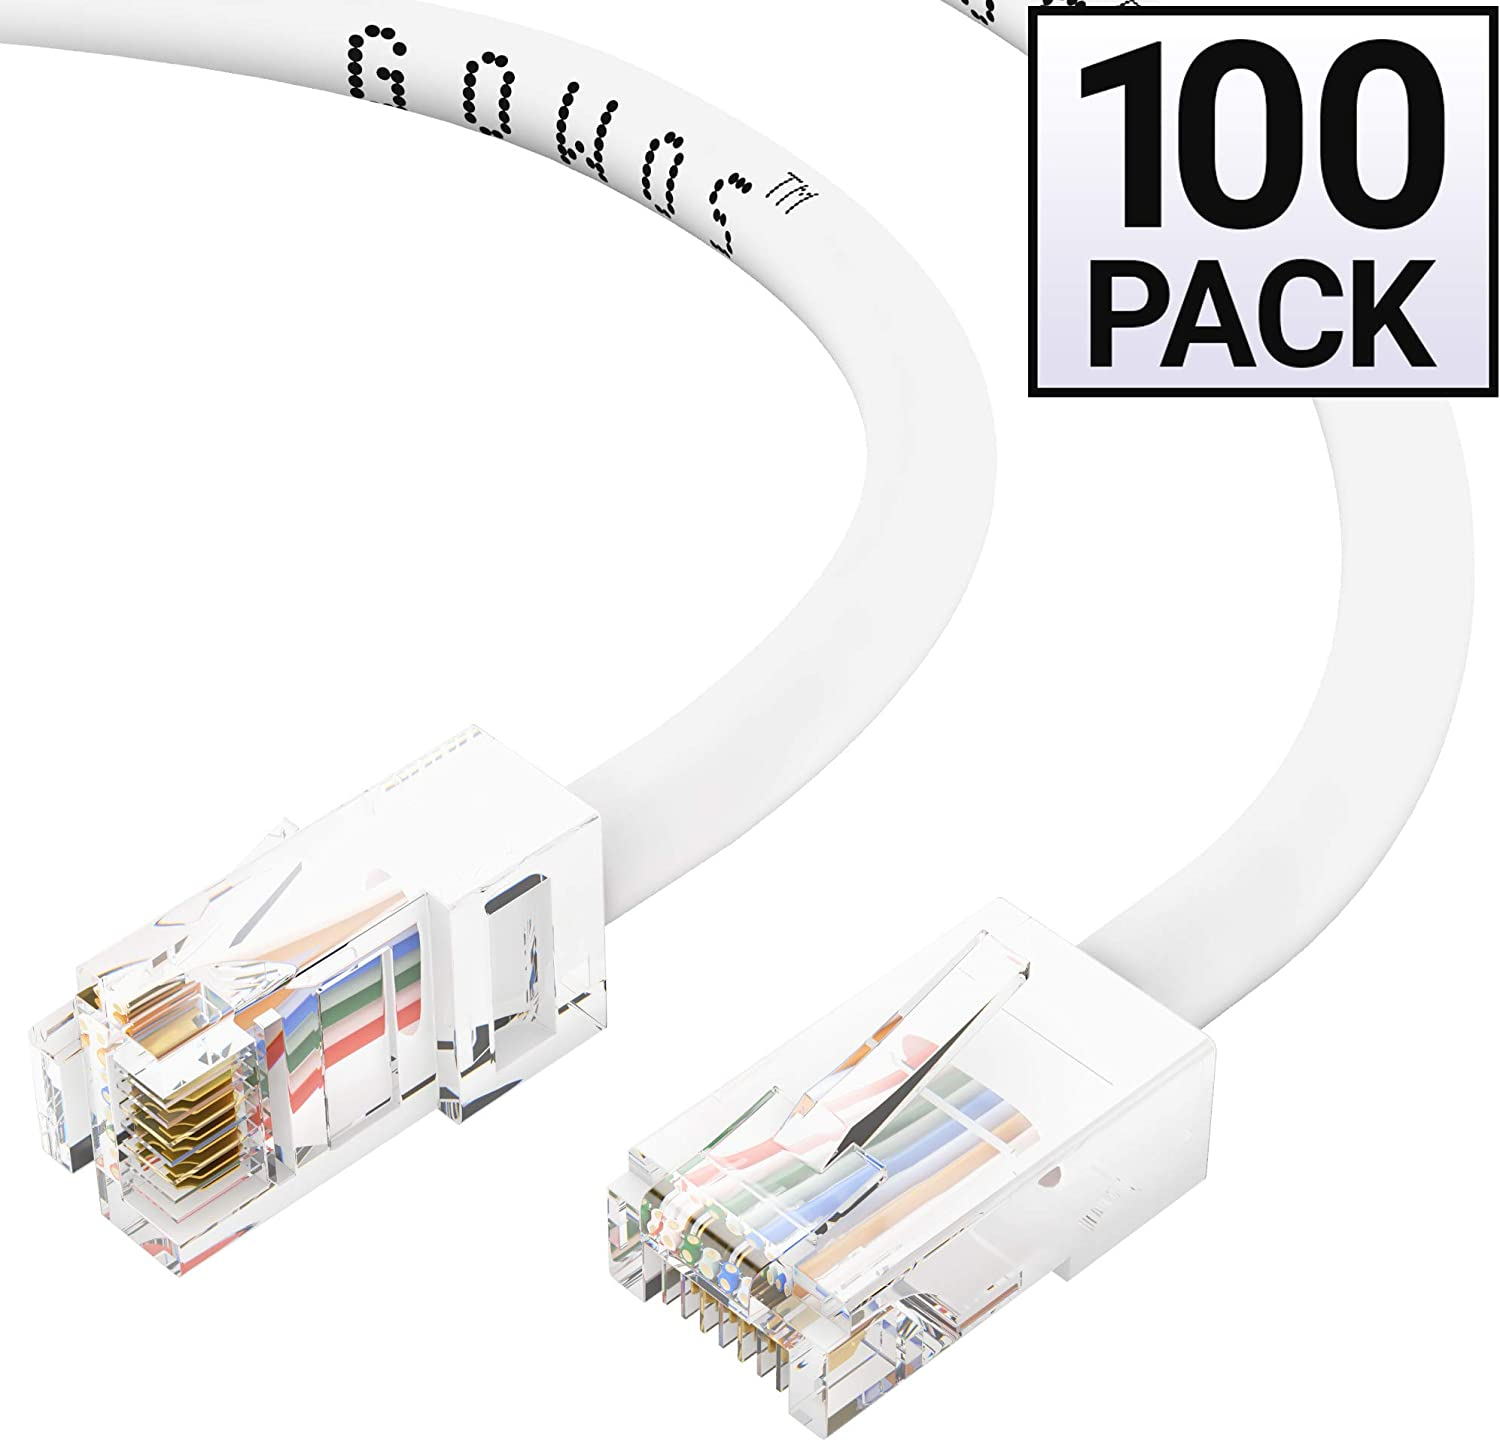 1Gigabit//Sec High Speed LAN Internet//Patch Cable GOWOS Cat5e Ethernet Cable 10-Pack - 10 Feet 24AWG Network Cable with Gold Plated RJ45 Non-Booted Connector 350MHz Yellow